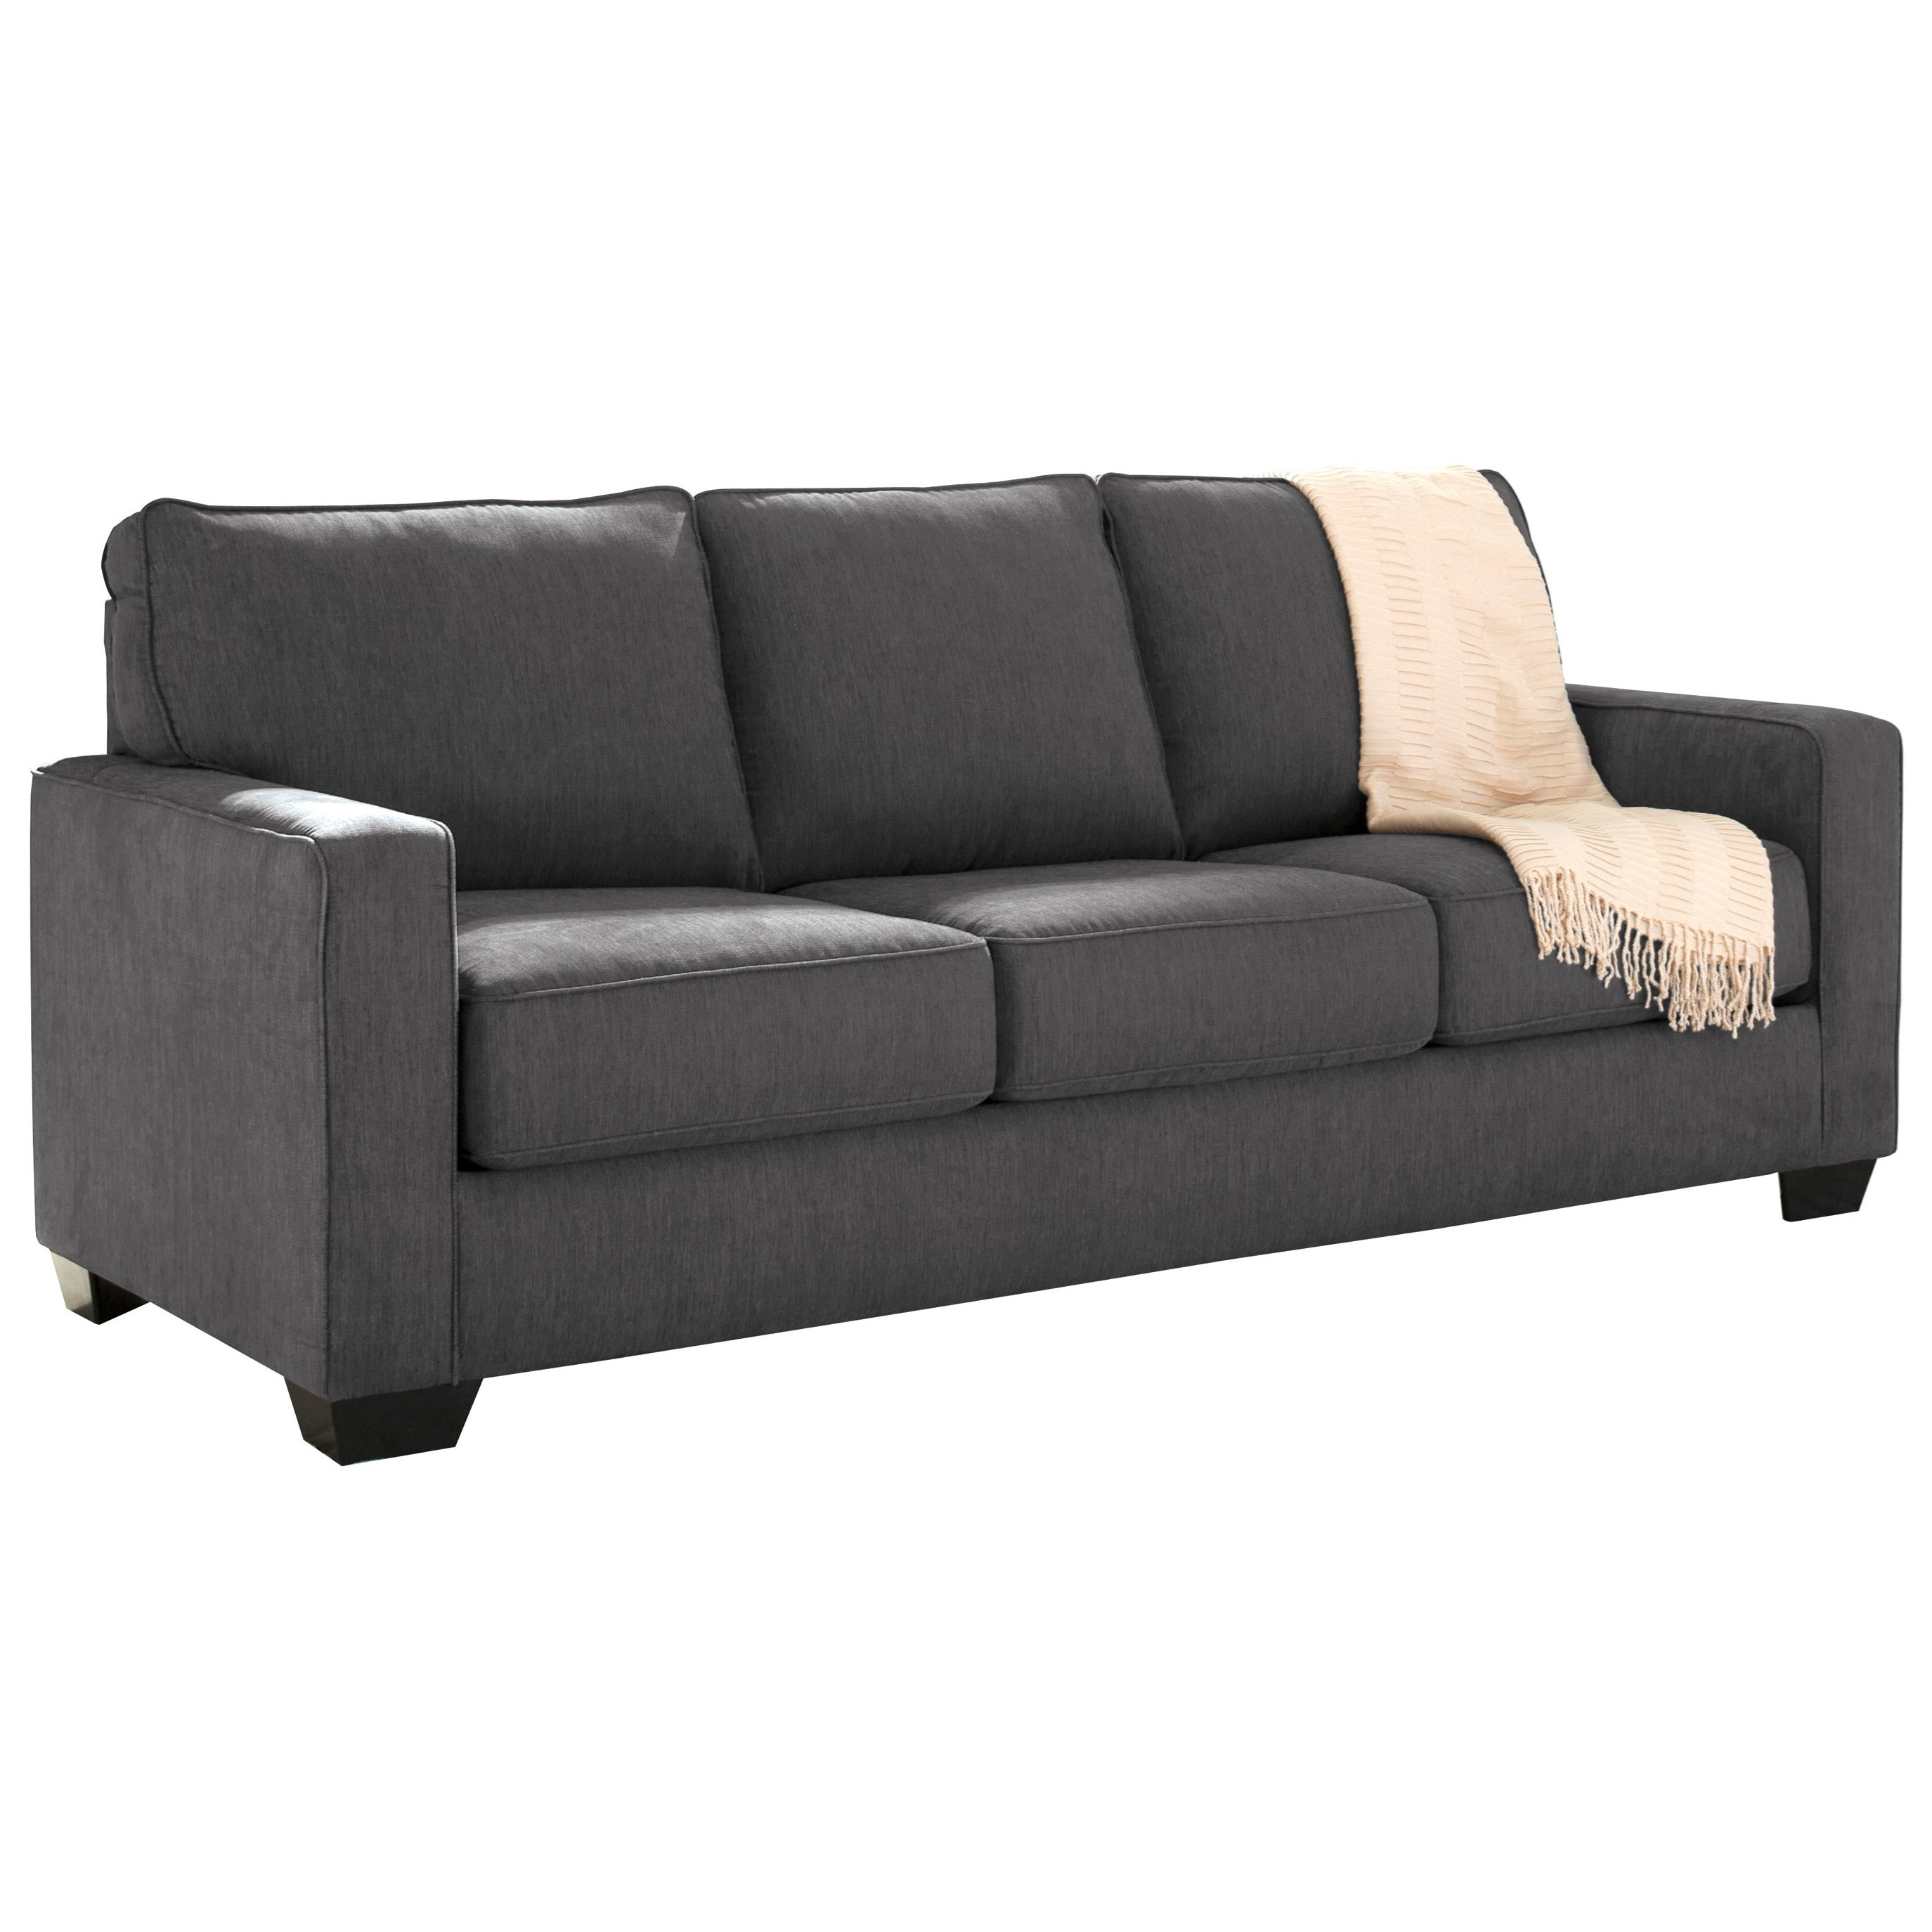 Queen size sofa bed Queen size sofa bed with memory foam mattress XUOOESD